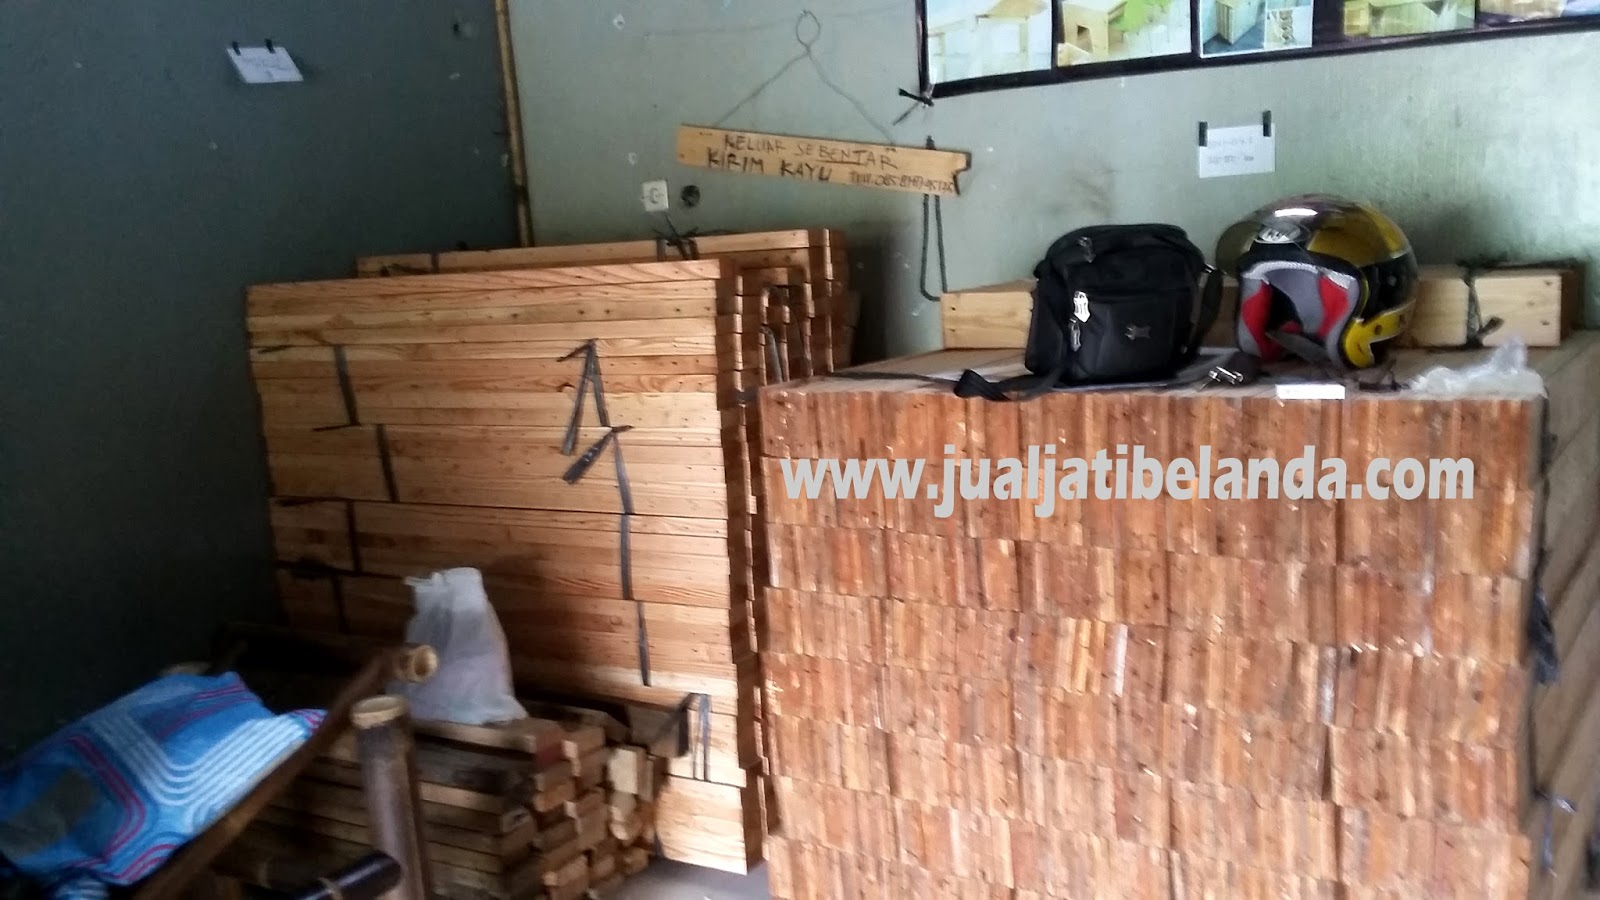 Finishing Kayu Jati Belanda dengan Biopolish®